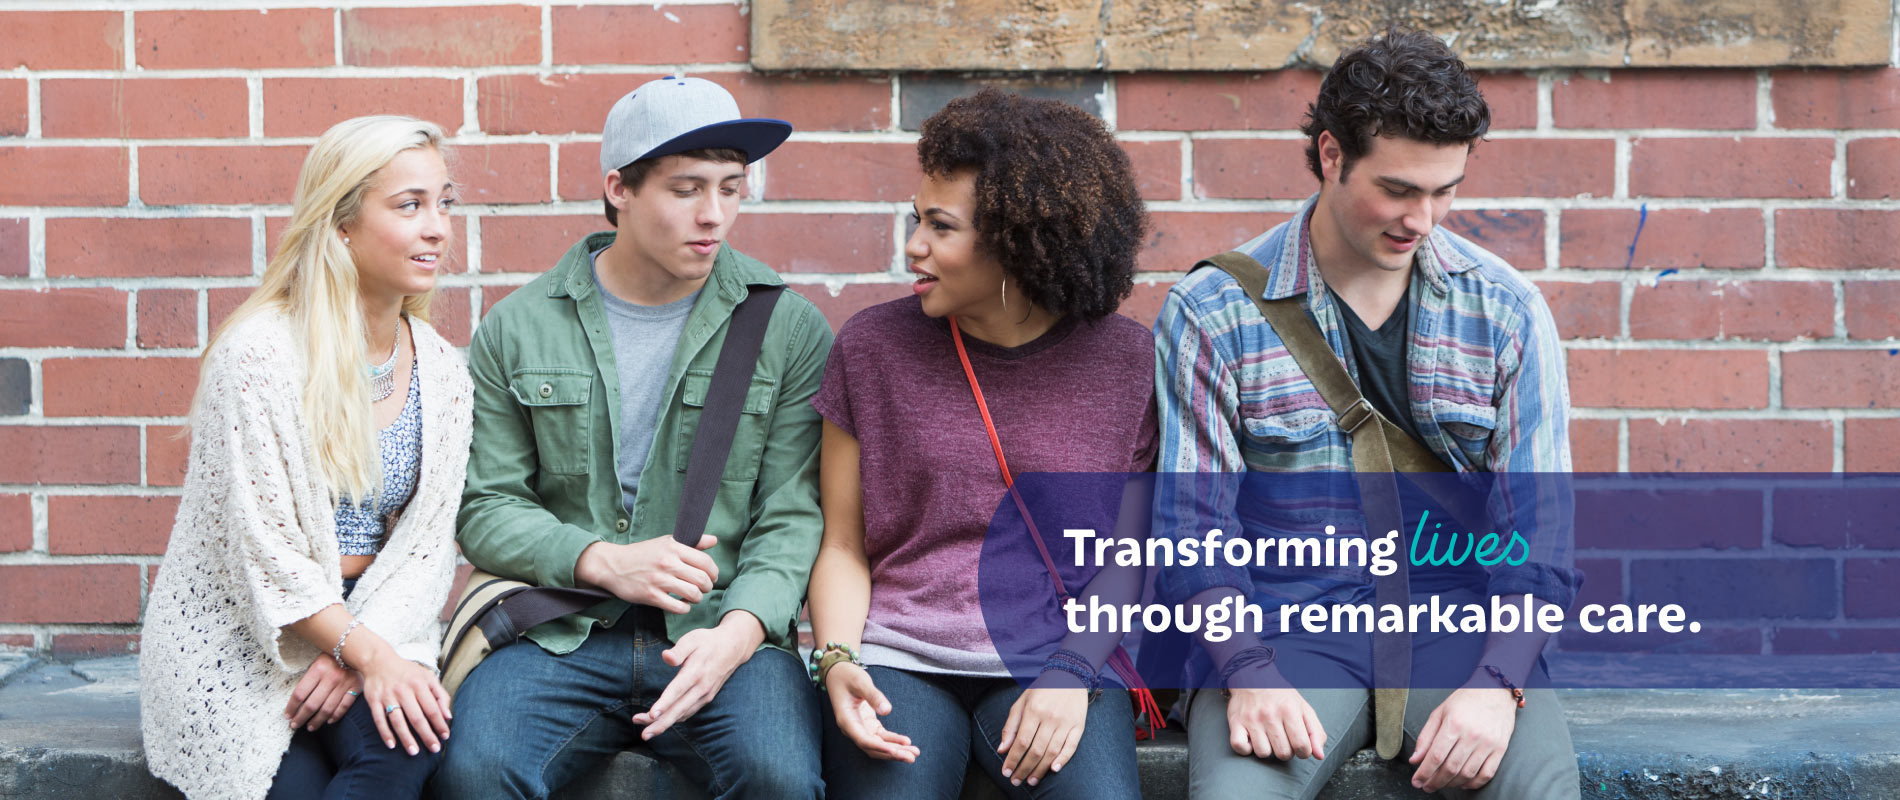 Transforming Lives Through Remarkable Care